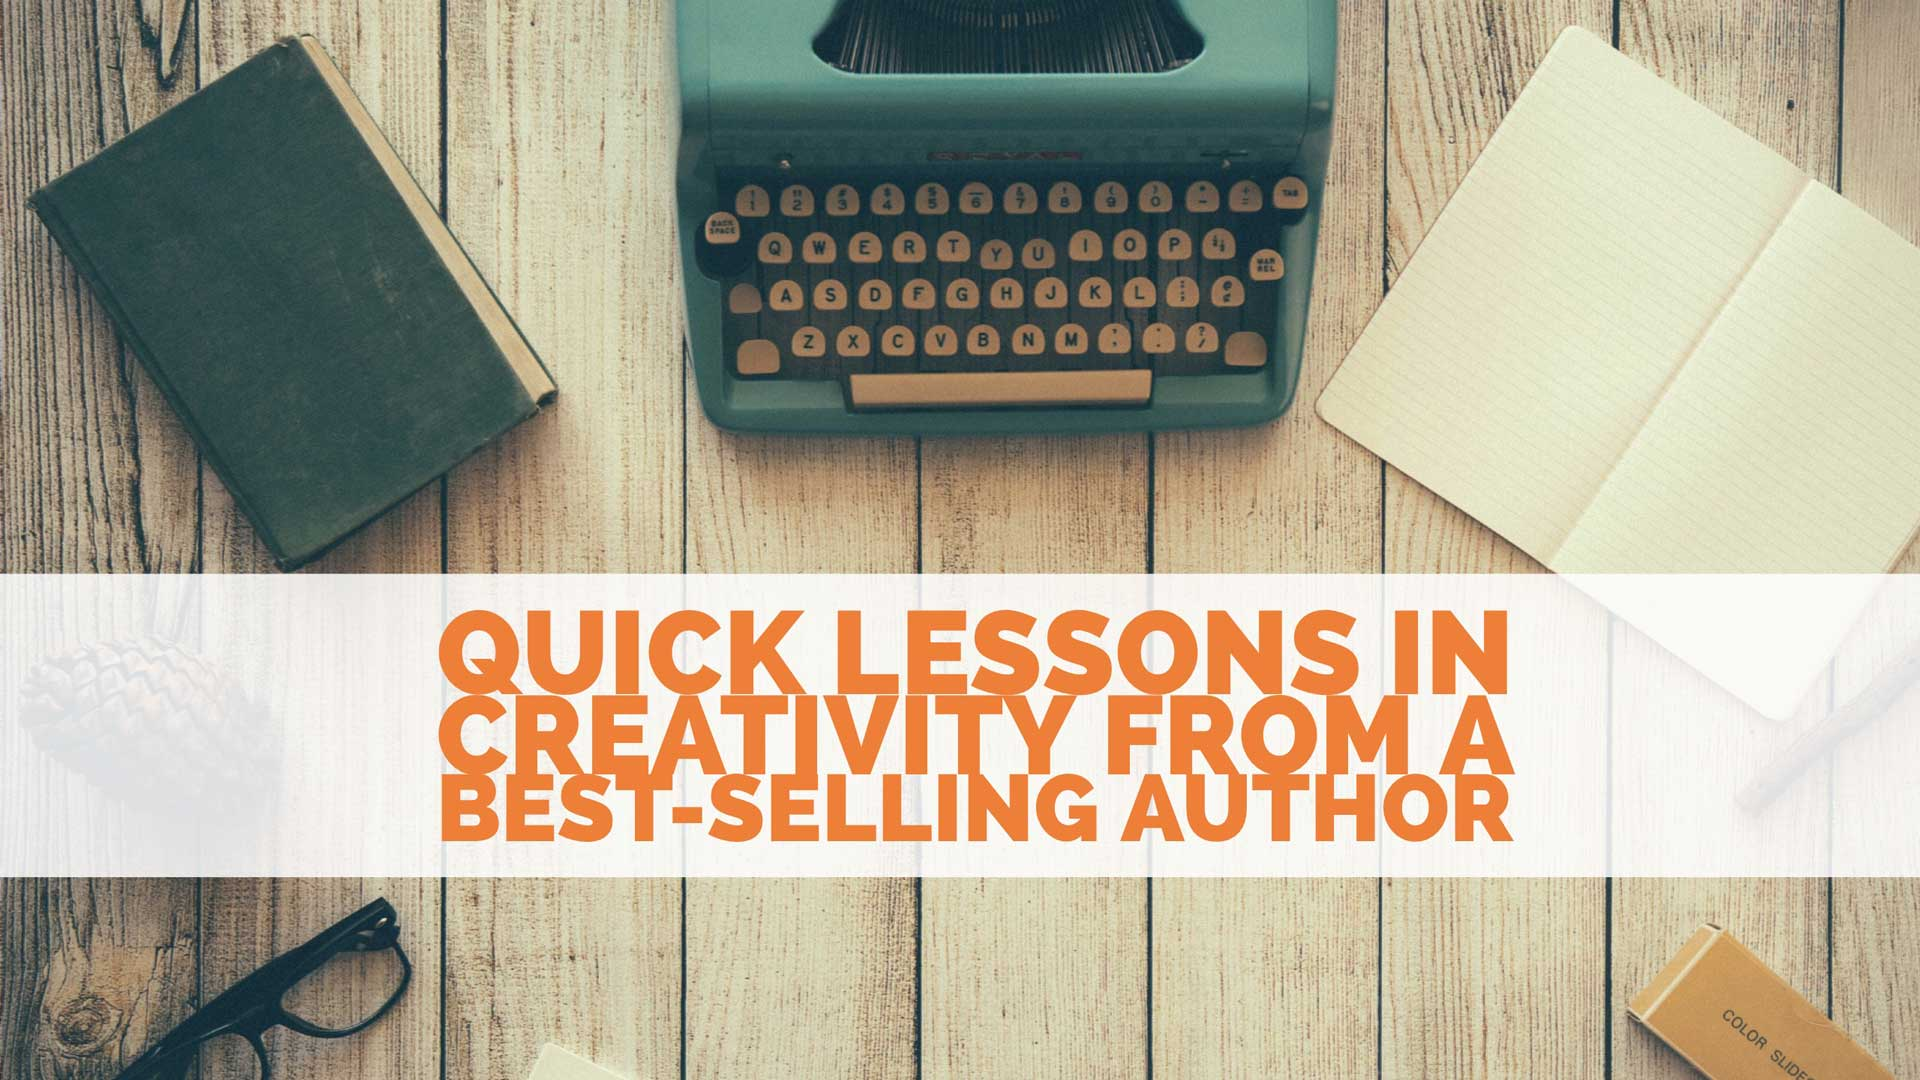 Quick-lessons-in-creativity-from-best-selling-author--by-Reformation-Designs-and-DR-silva